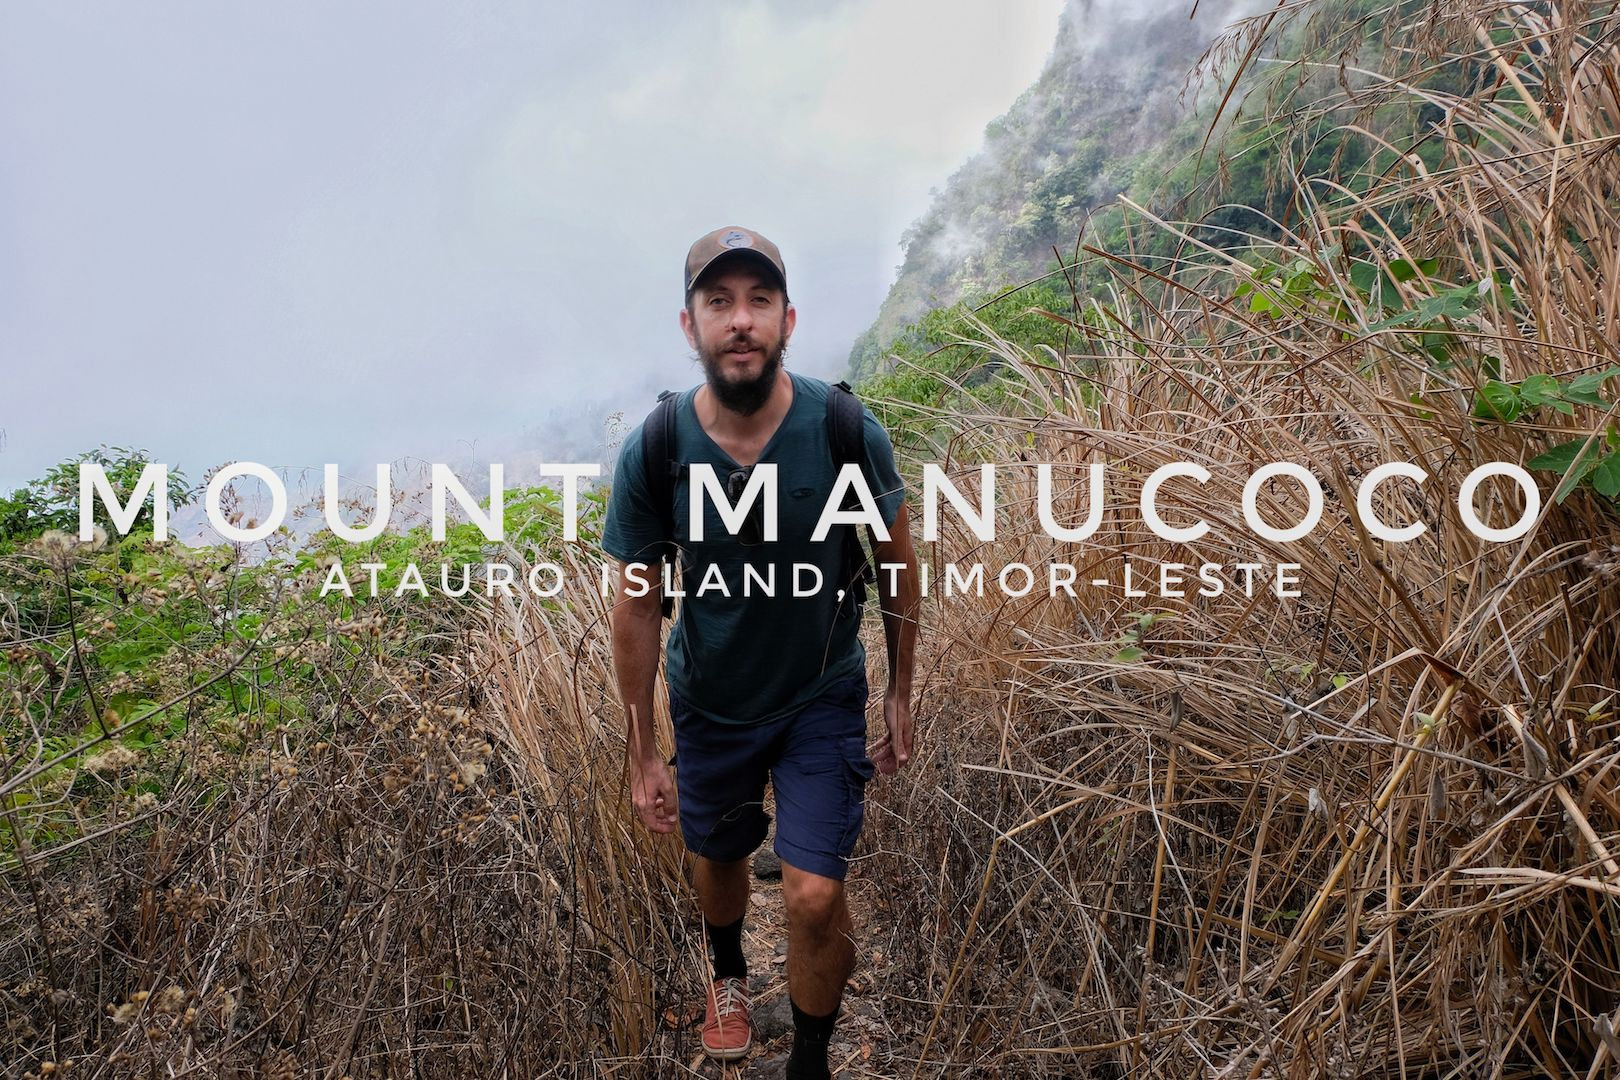 Mount Manucoco, Timor-Leste | Hiking to Atauro Island's Highest Point